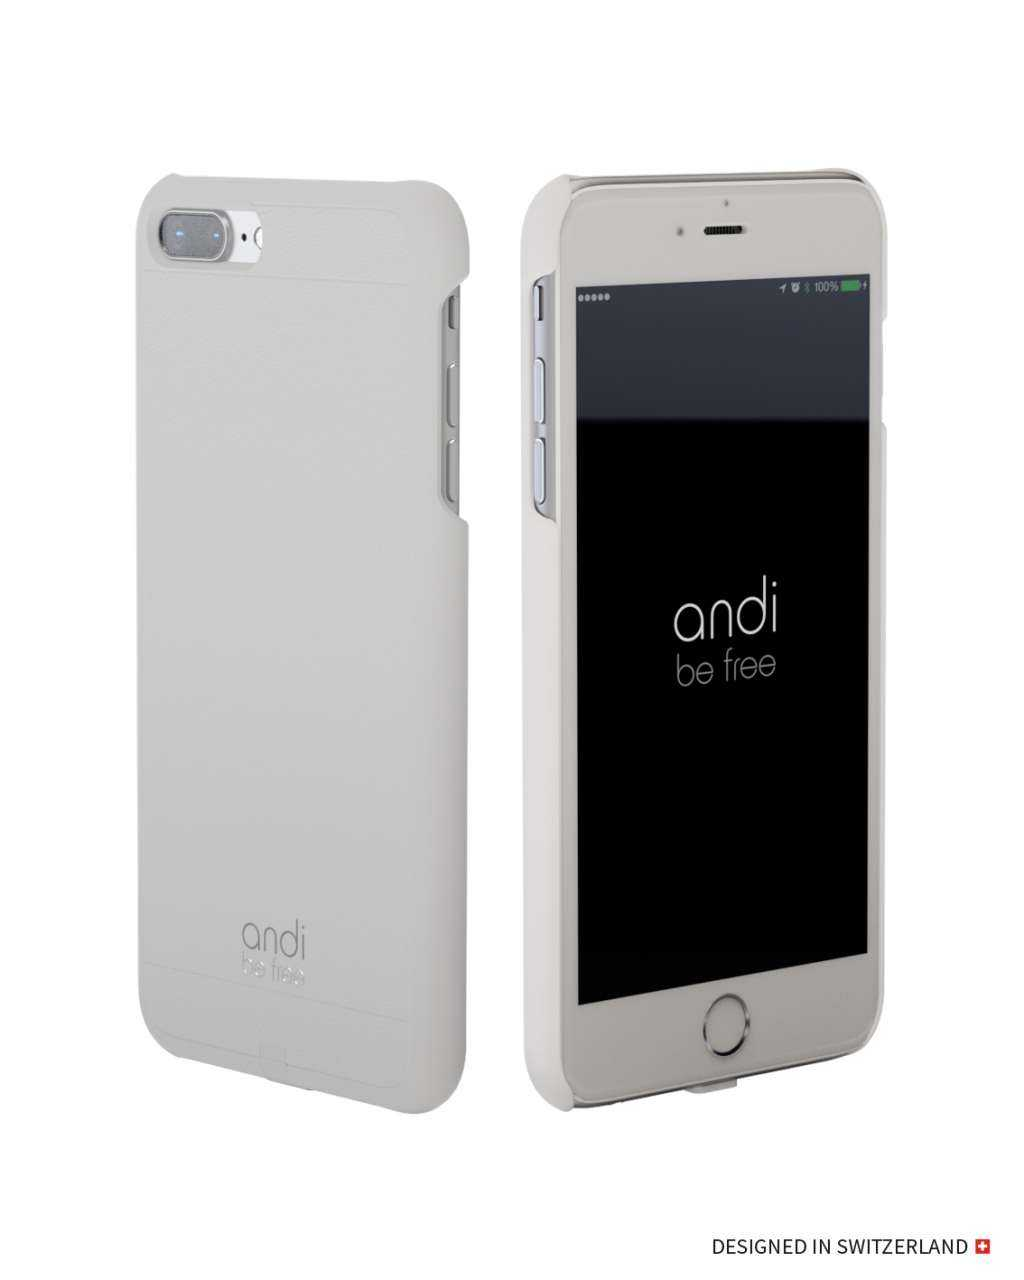 Image of andi be free Apple iPhone 7 Hülle - Wireless Charging Case - weiss